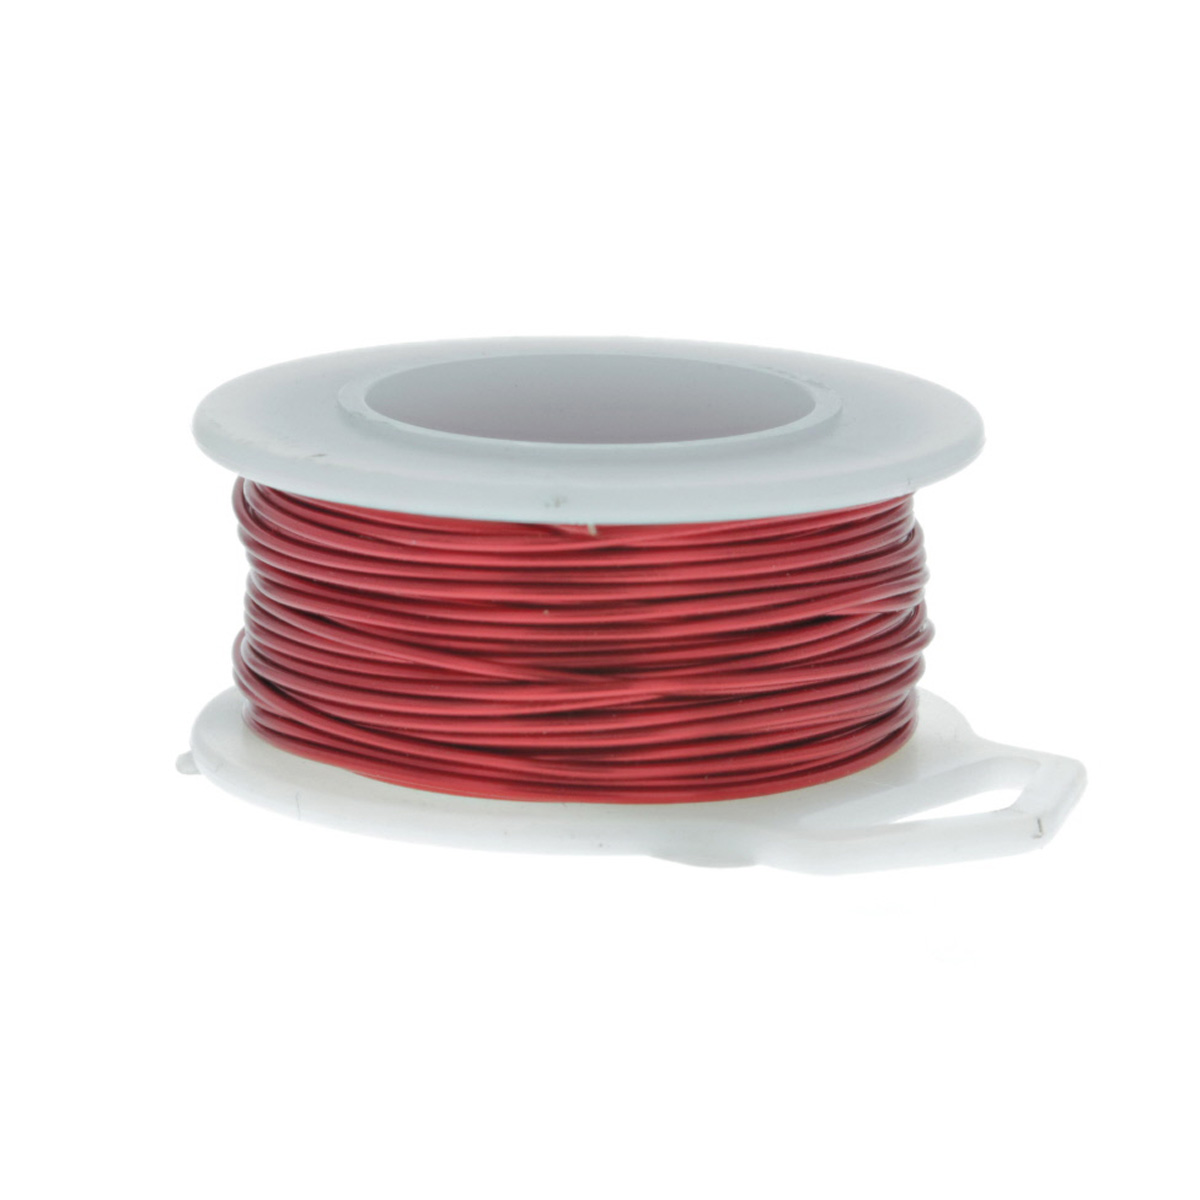 12 Gauge Round Red Enameled Craft Wire 5 Ft Wire Jewelry